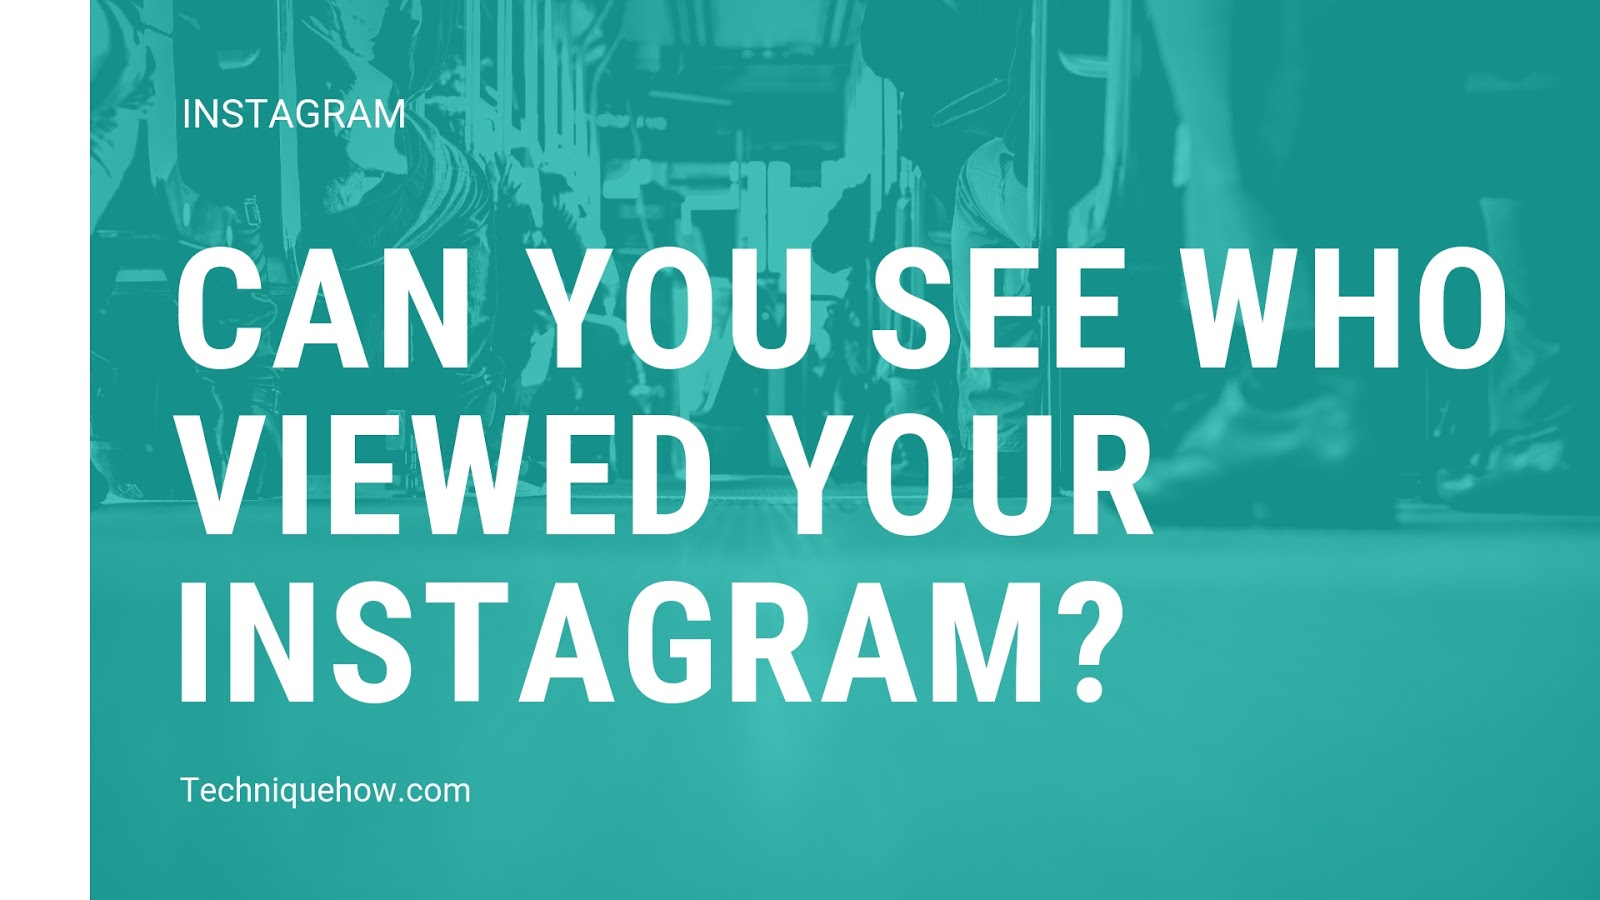 See who Viewed your Instagram